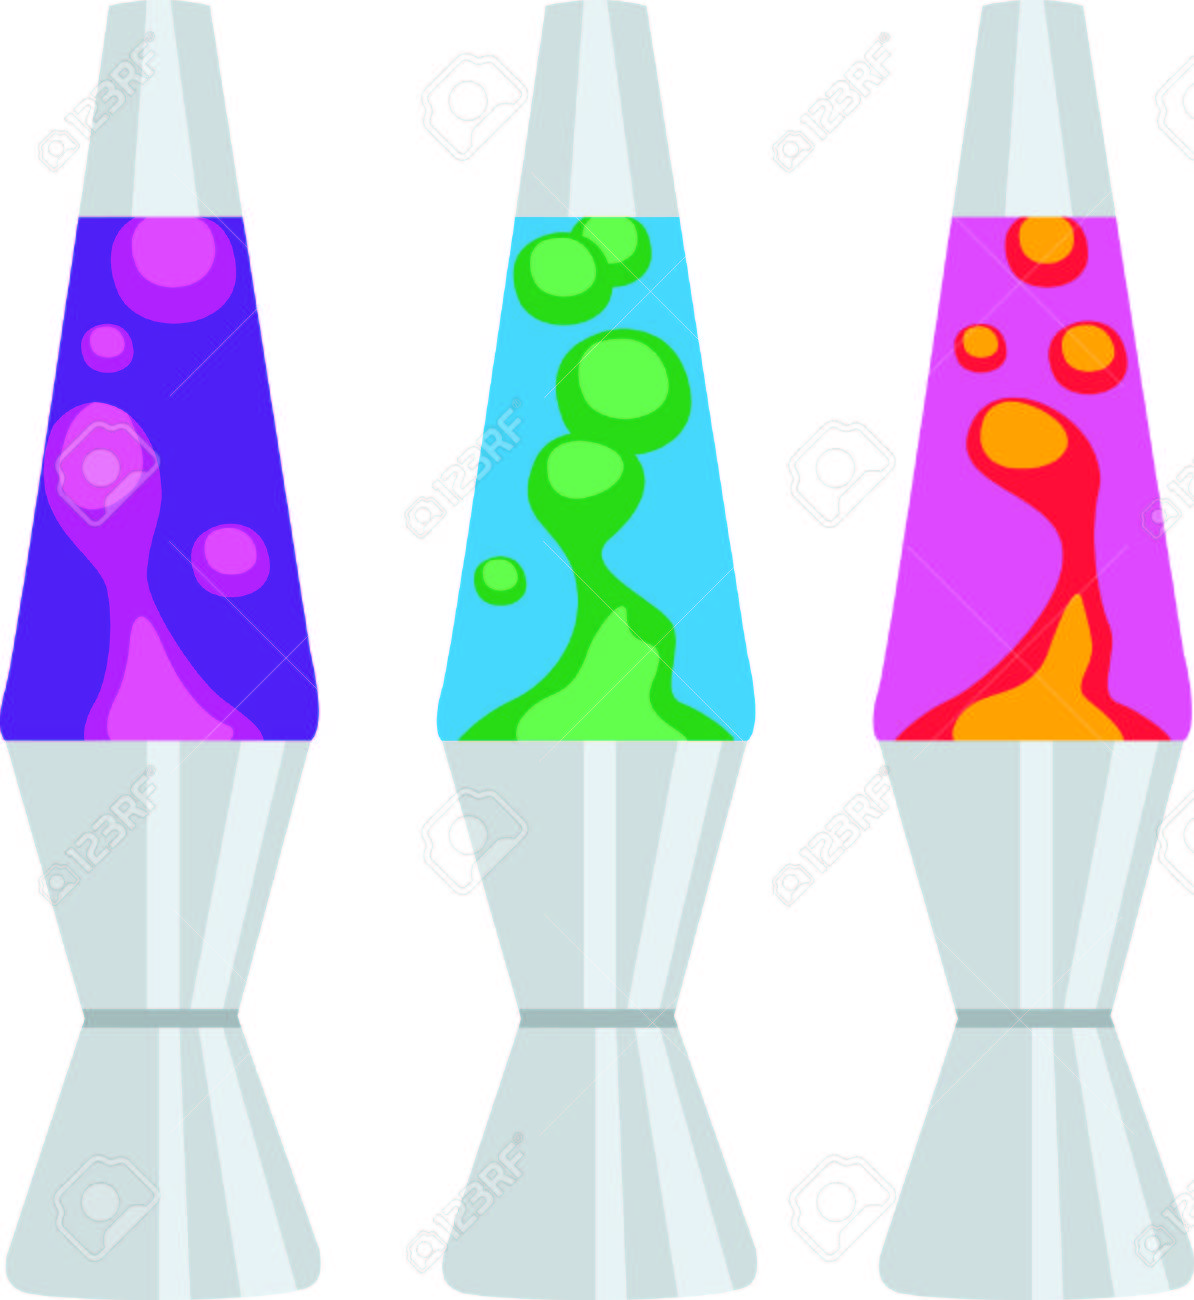 Get this lava lamp for your next design..